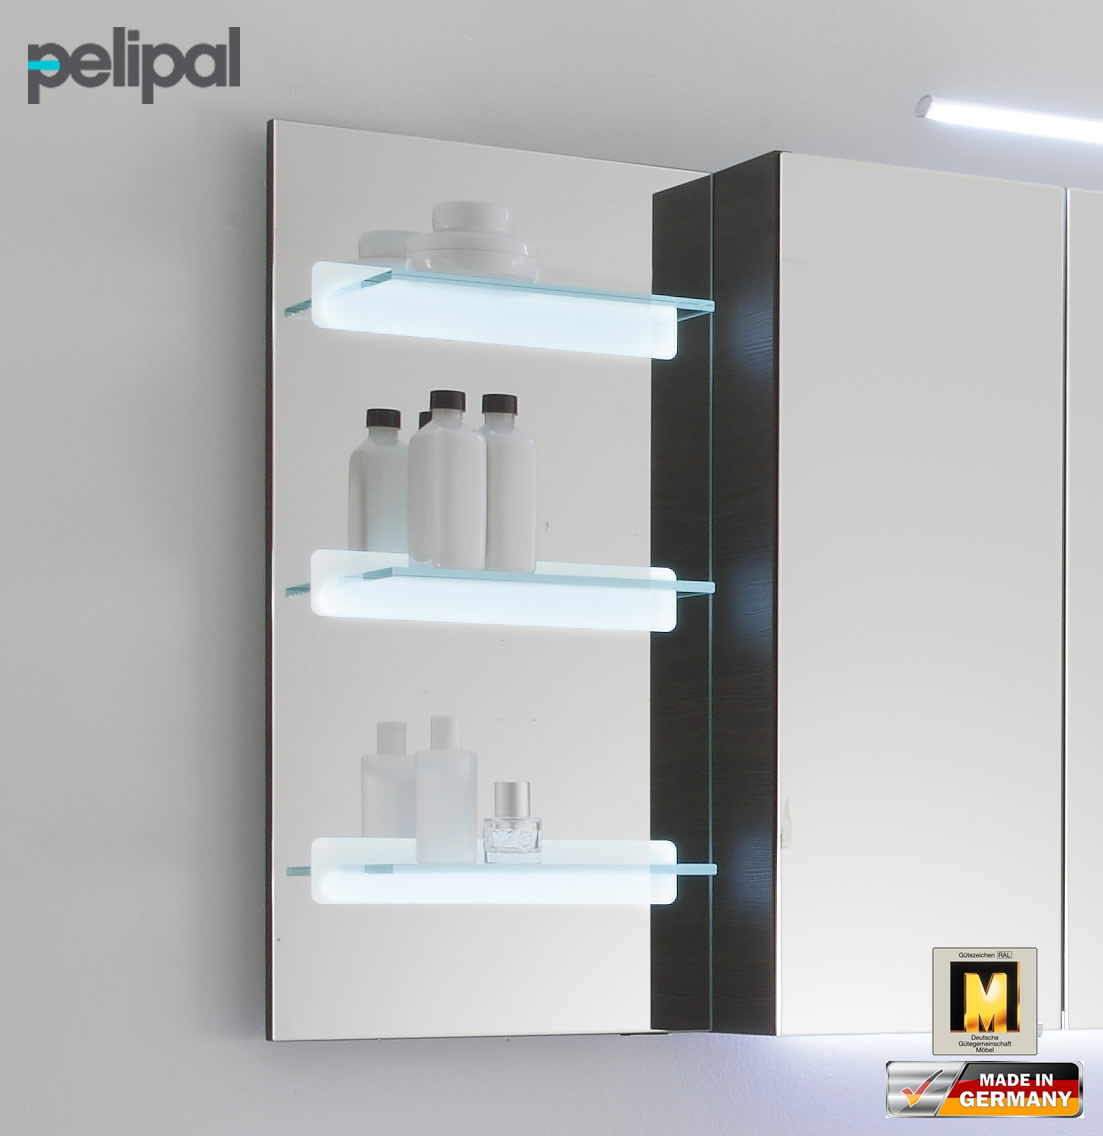 pelipal solitaire 7005 ablagepaneel 70 cm mit led rd. Black Bedroom Furniture Sets. Home Design Ideas